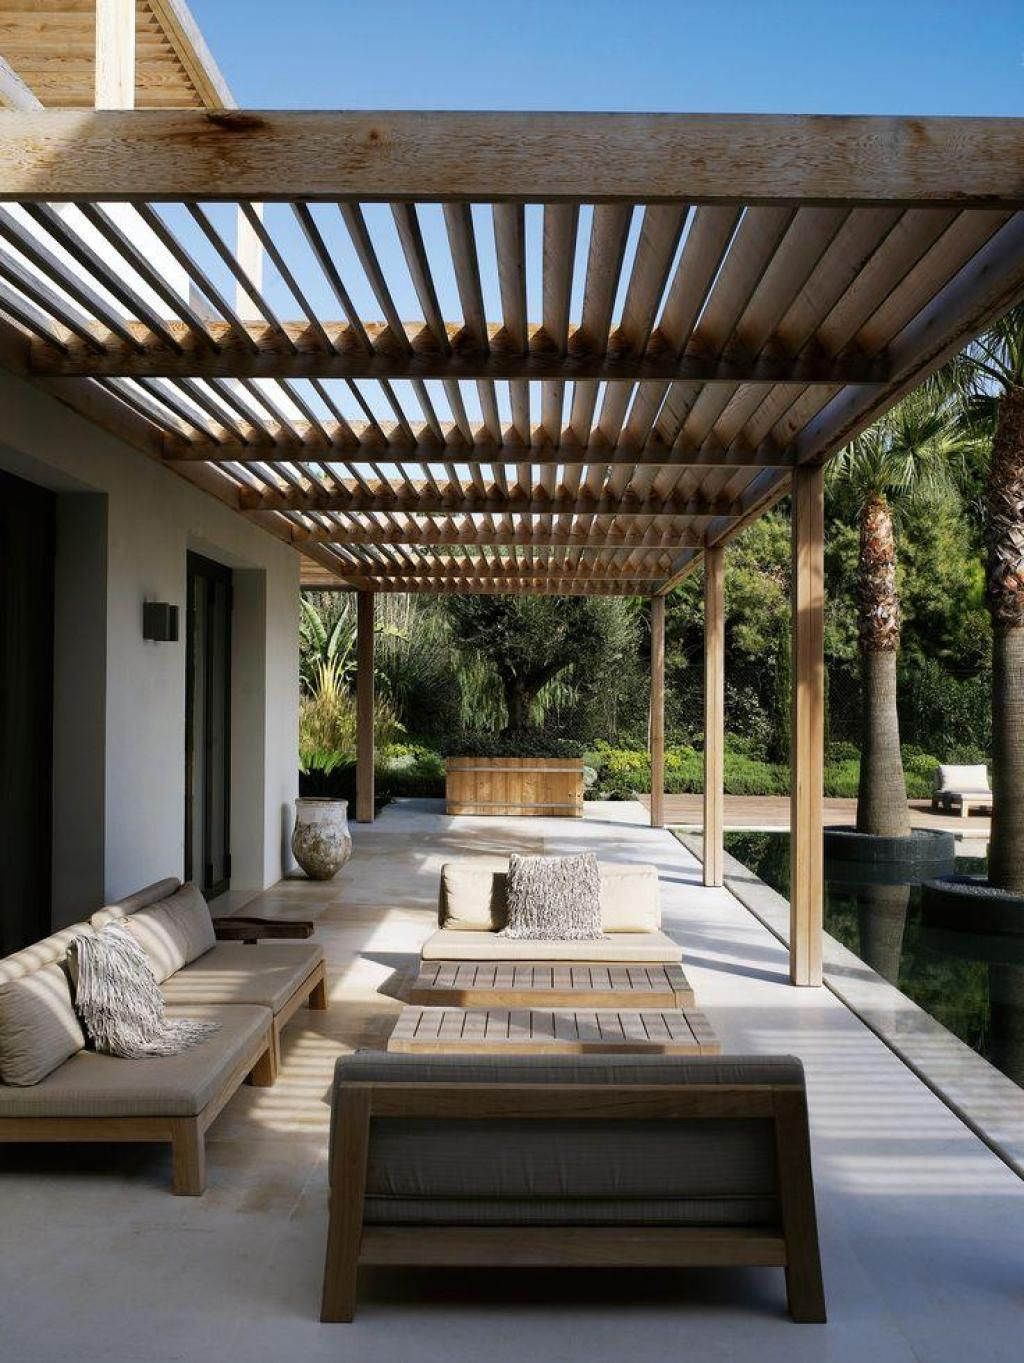 Pergola Designs 25 Best Modern Pergola Designs Gallery Inspiration Home